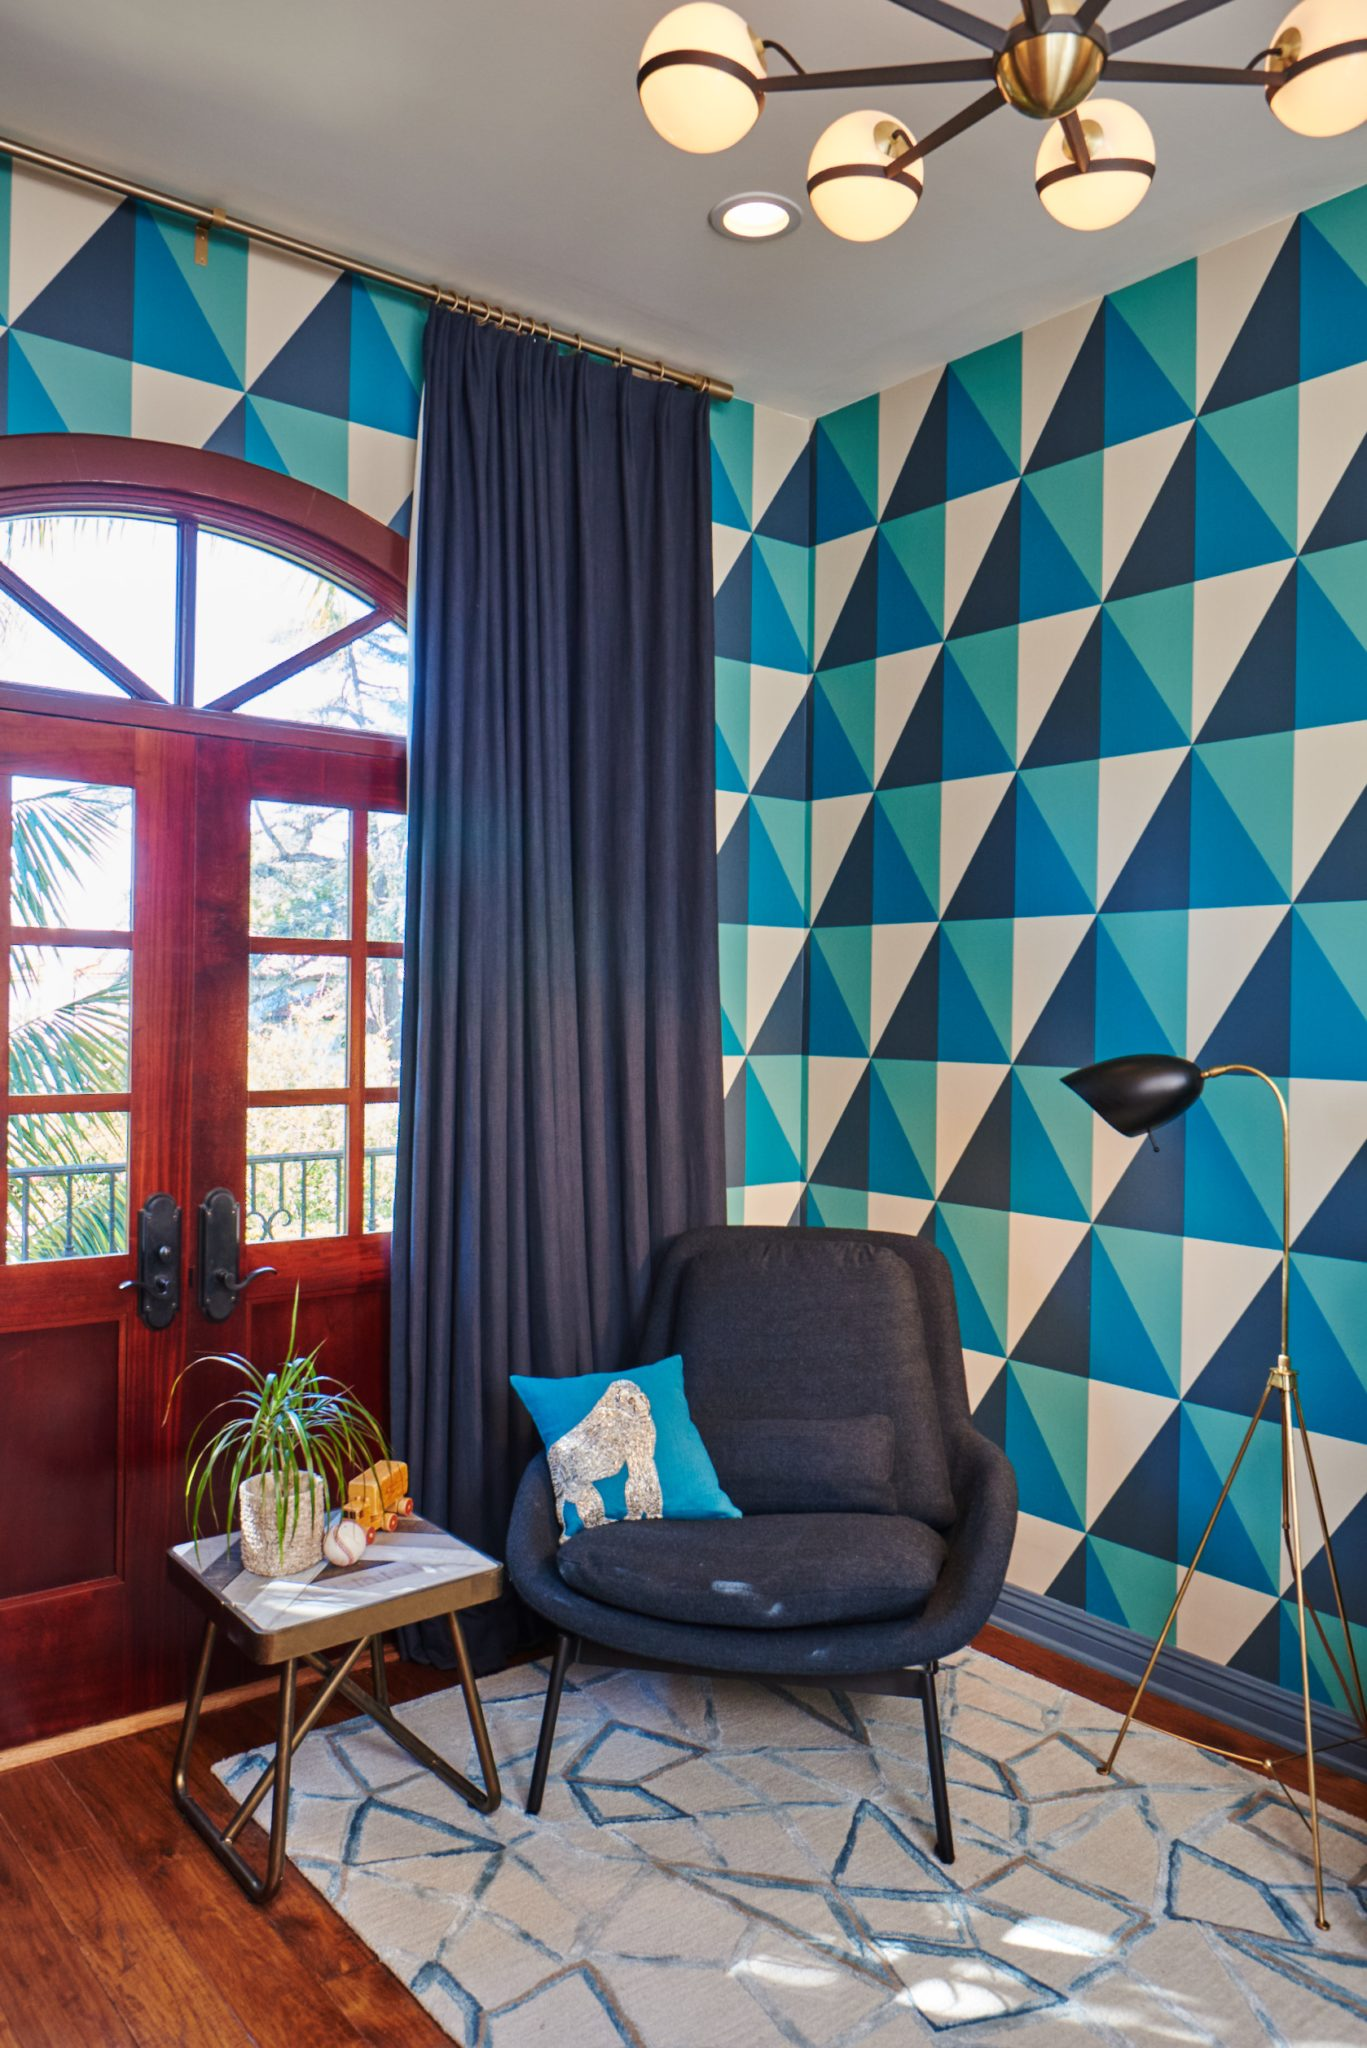 Geometric wallpaper in navy, teal and oatmeal creates graphic appeal. by Sarah Barnard Design